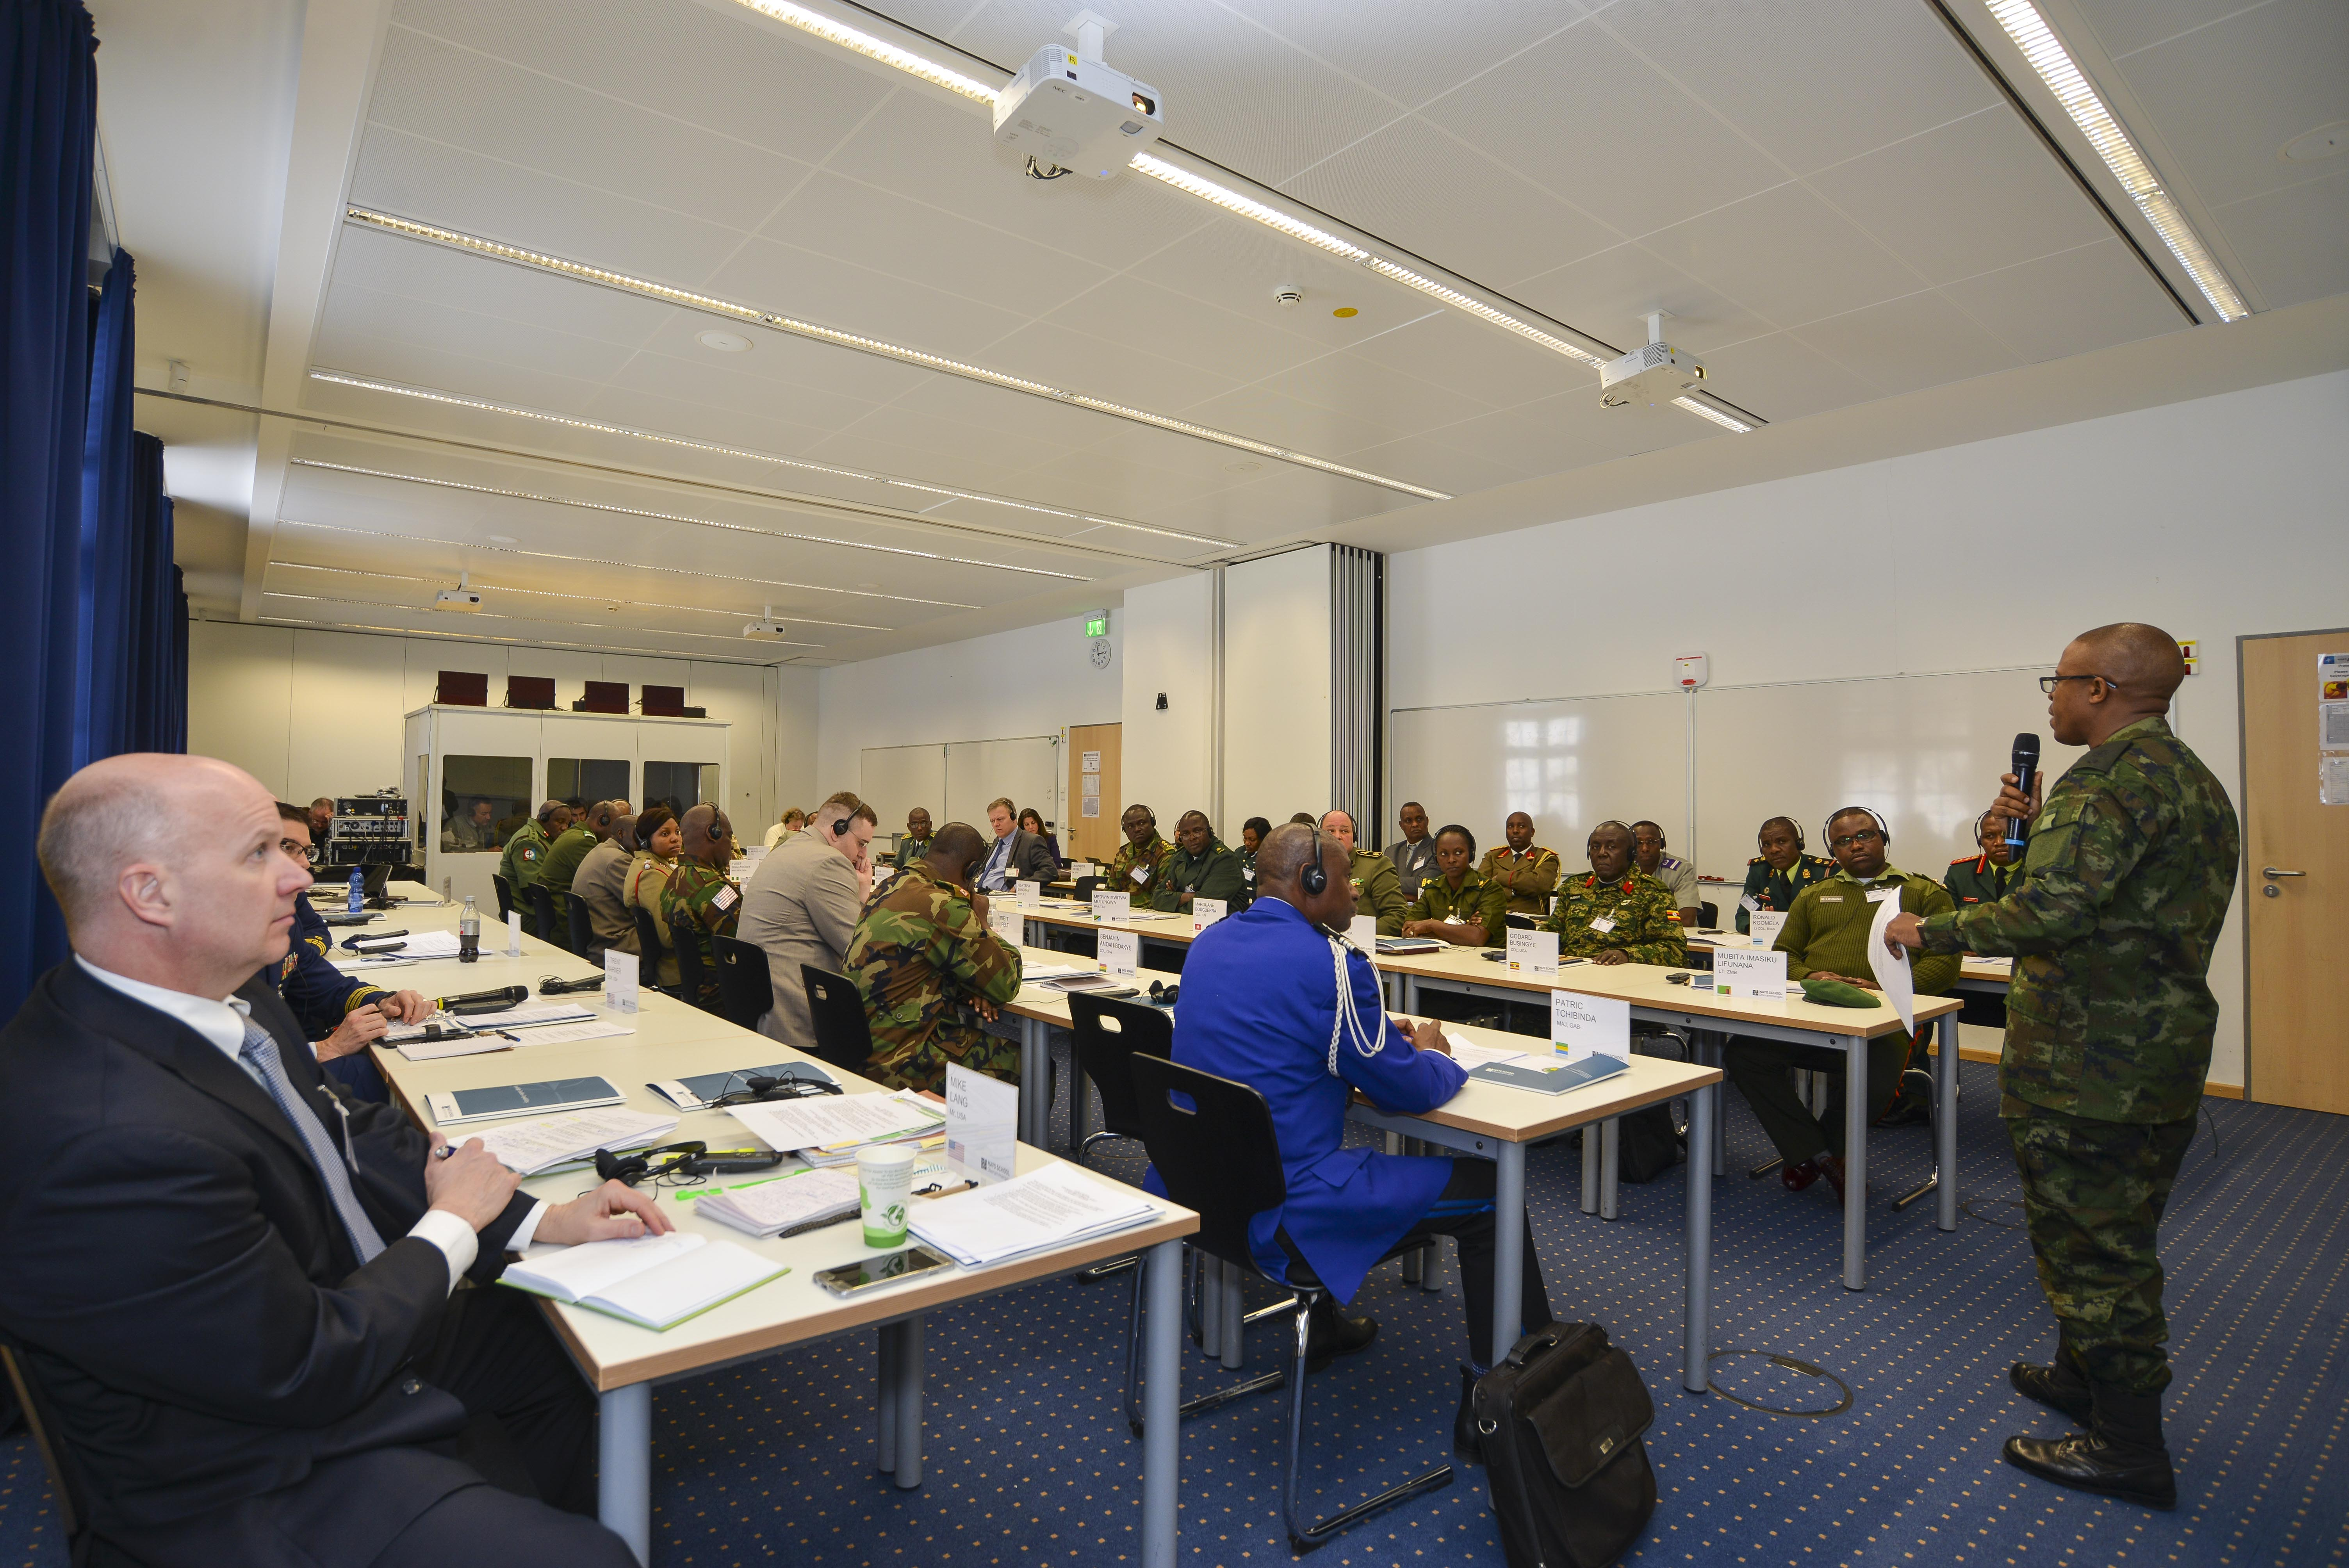 Rwandan military prosecutor Lt. Col. Pacifique Kabanda (standing) describes the current challenges in supporting investigations, Oberammergau, Germany, March 1, 2018. (Photo by Cpl. Victor Leonard, NATO School Public Affairs/Released)